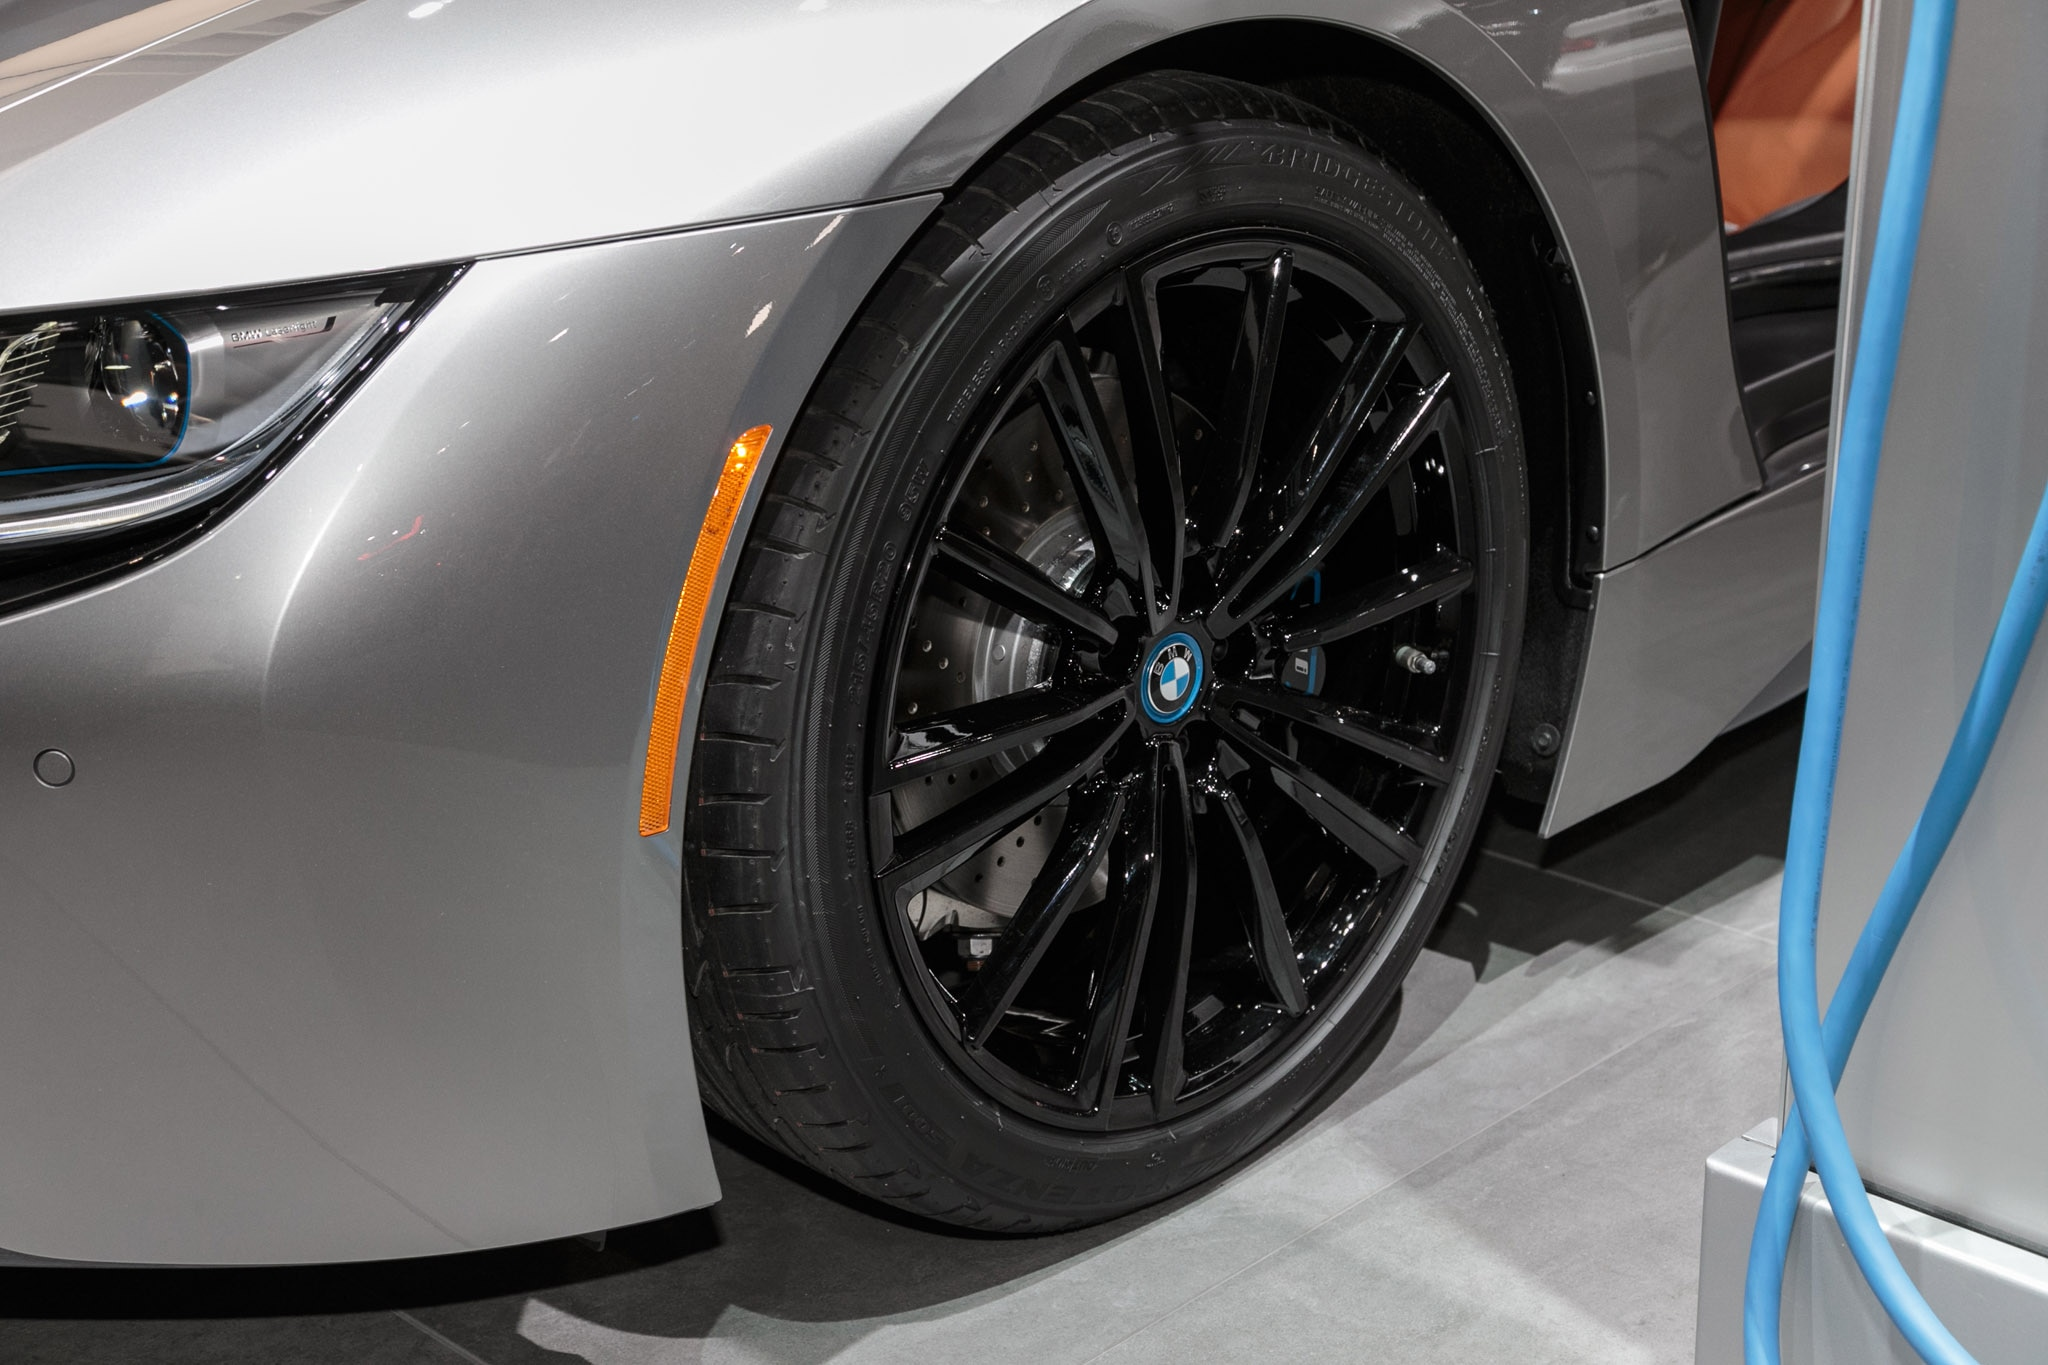 2019 Bmw I8 Coupe And Roadster First Edition Debut In Detroit